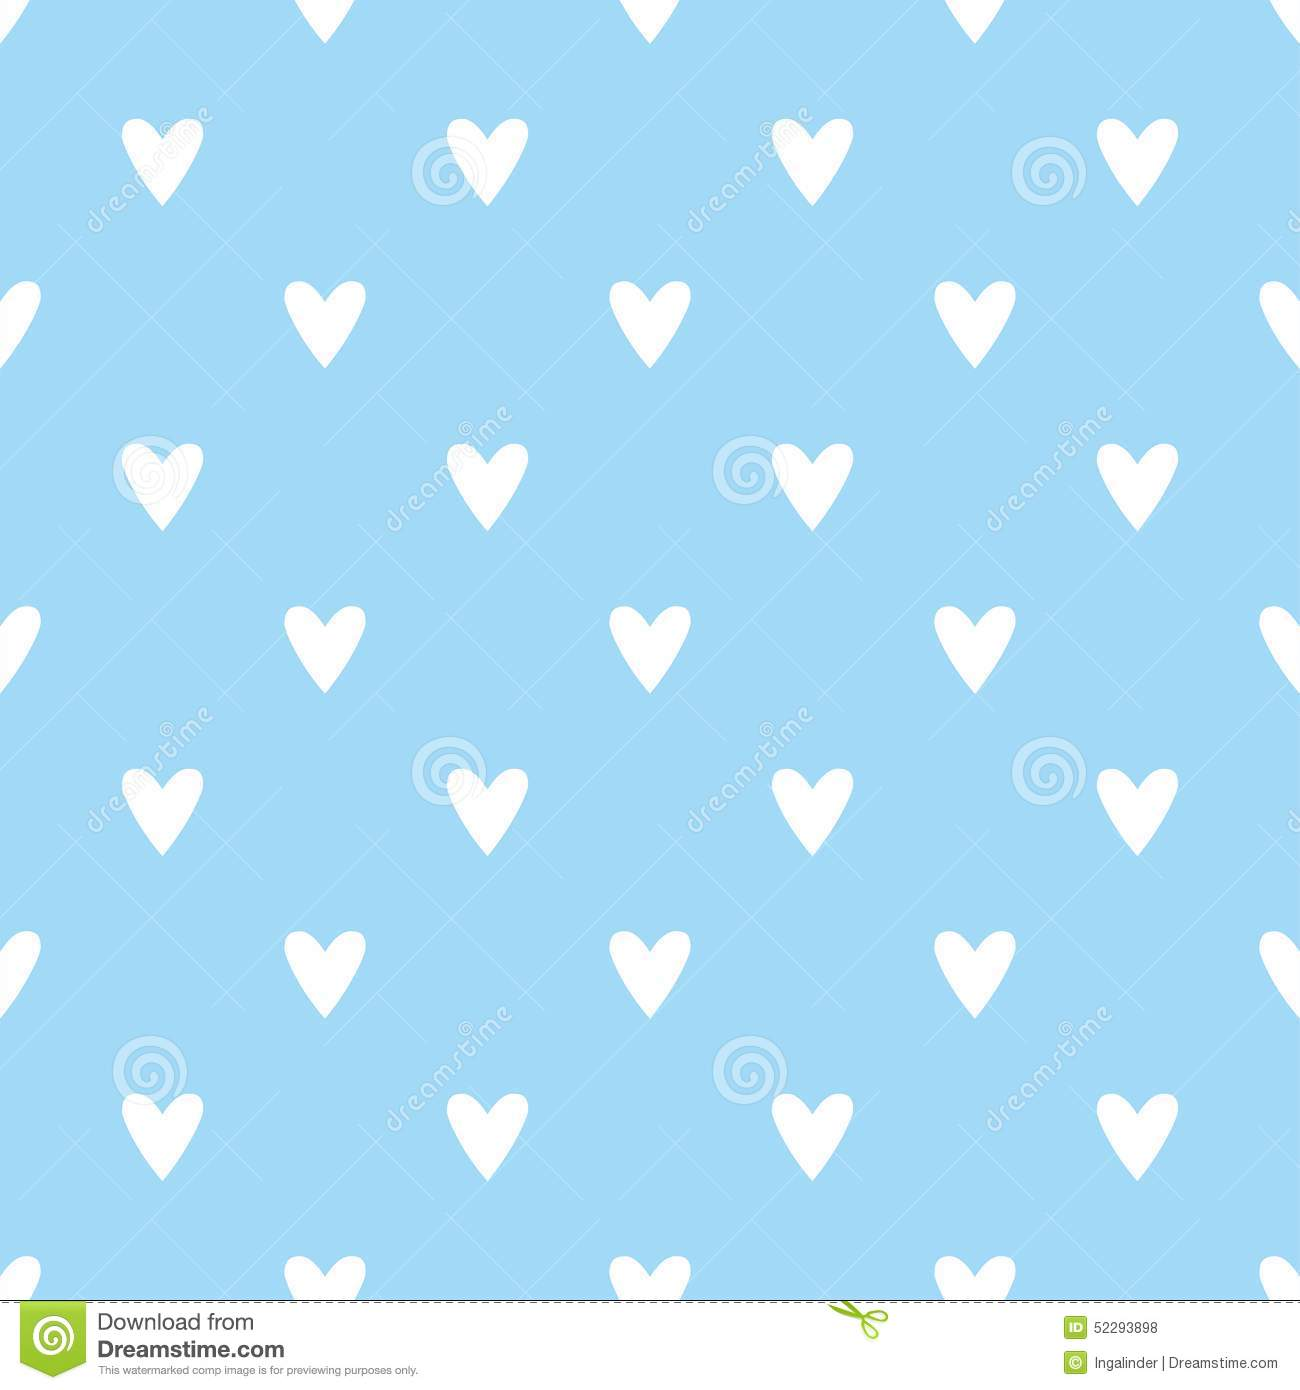 Animated Fish Wallpaper Hd Tile Vector Pattern With White Hearts On Blue Background